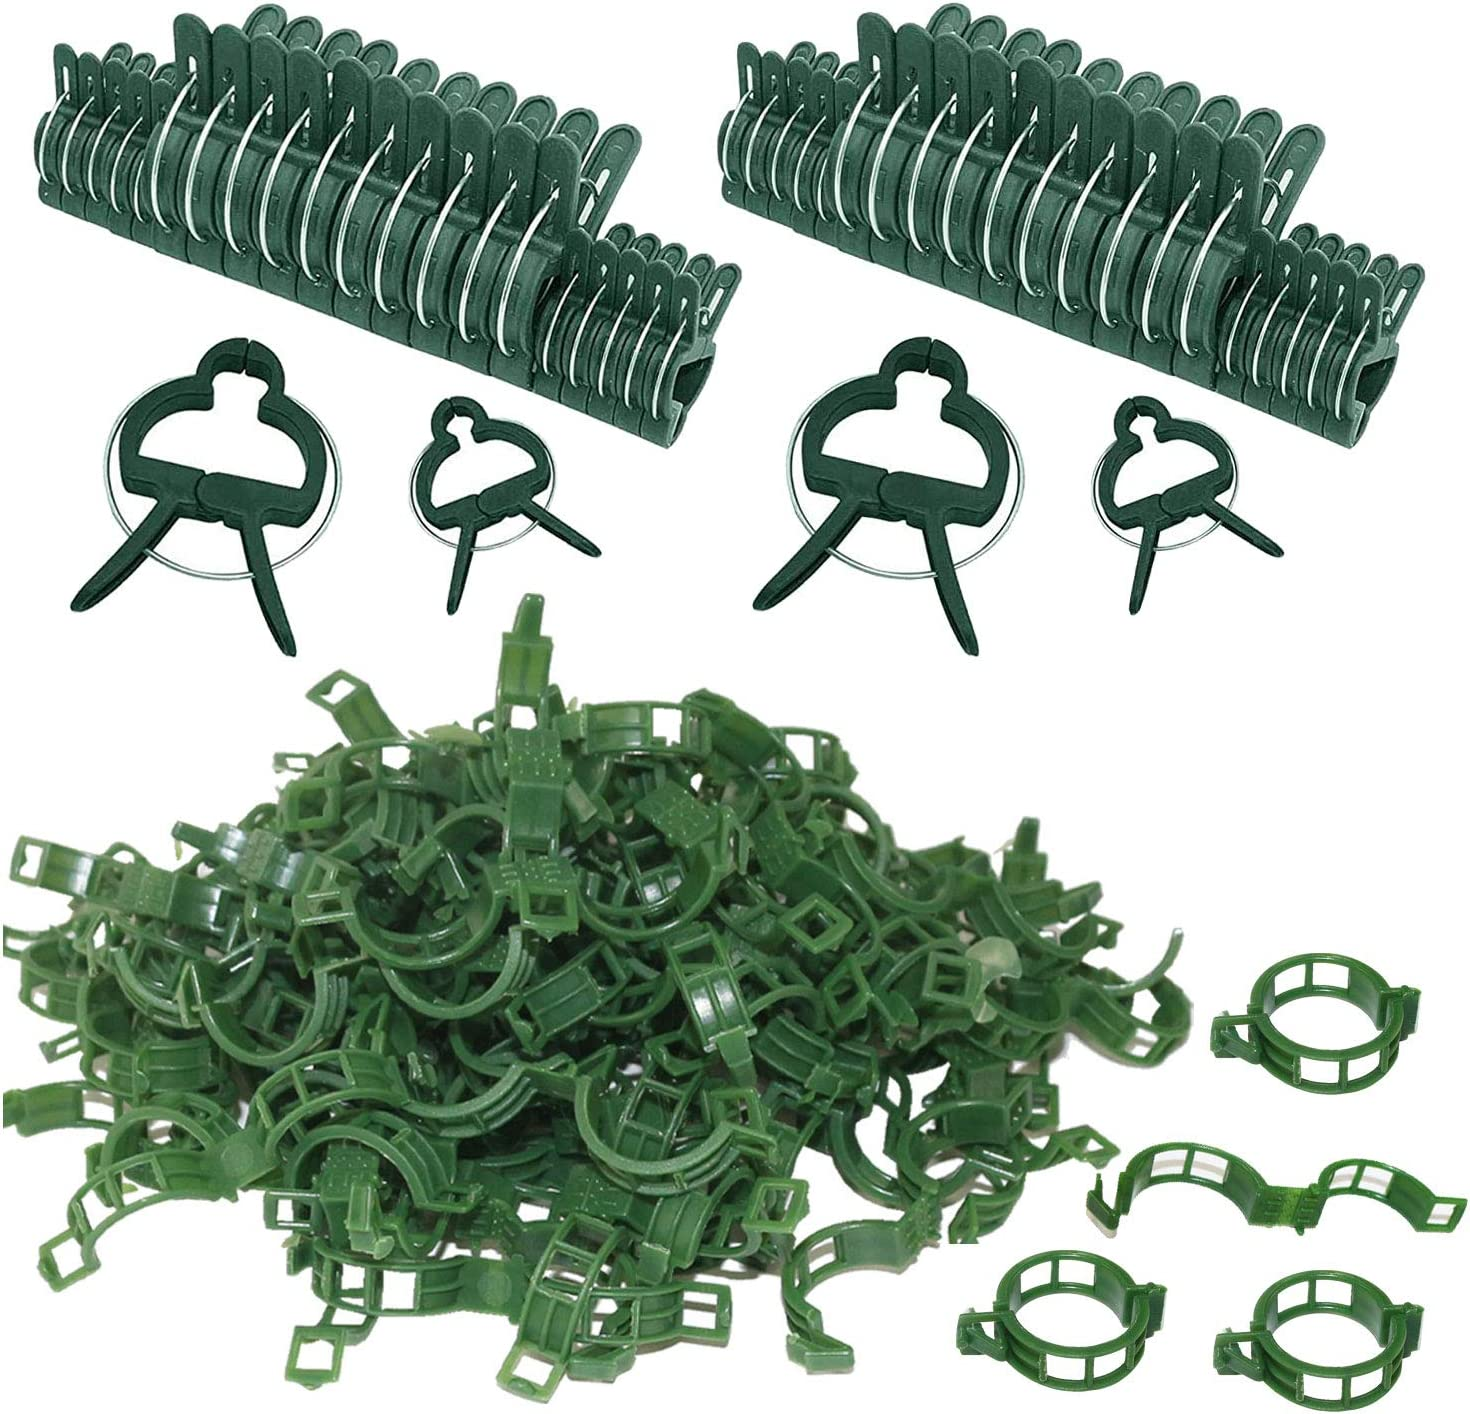 Stalks to Grow Upright. Vines 60PCS Large Plant Clips Garden Flower Support Clips for Supporting Stems